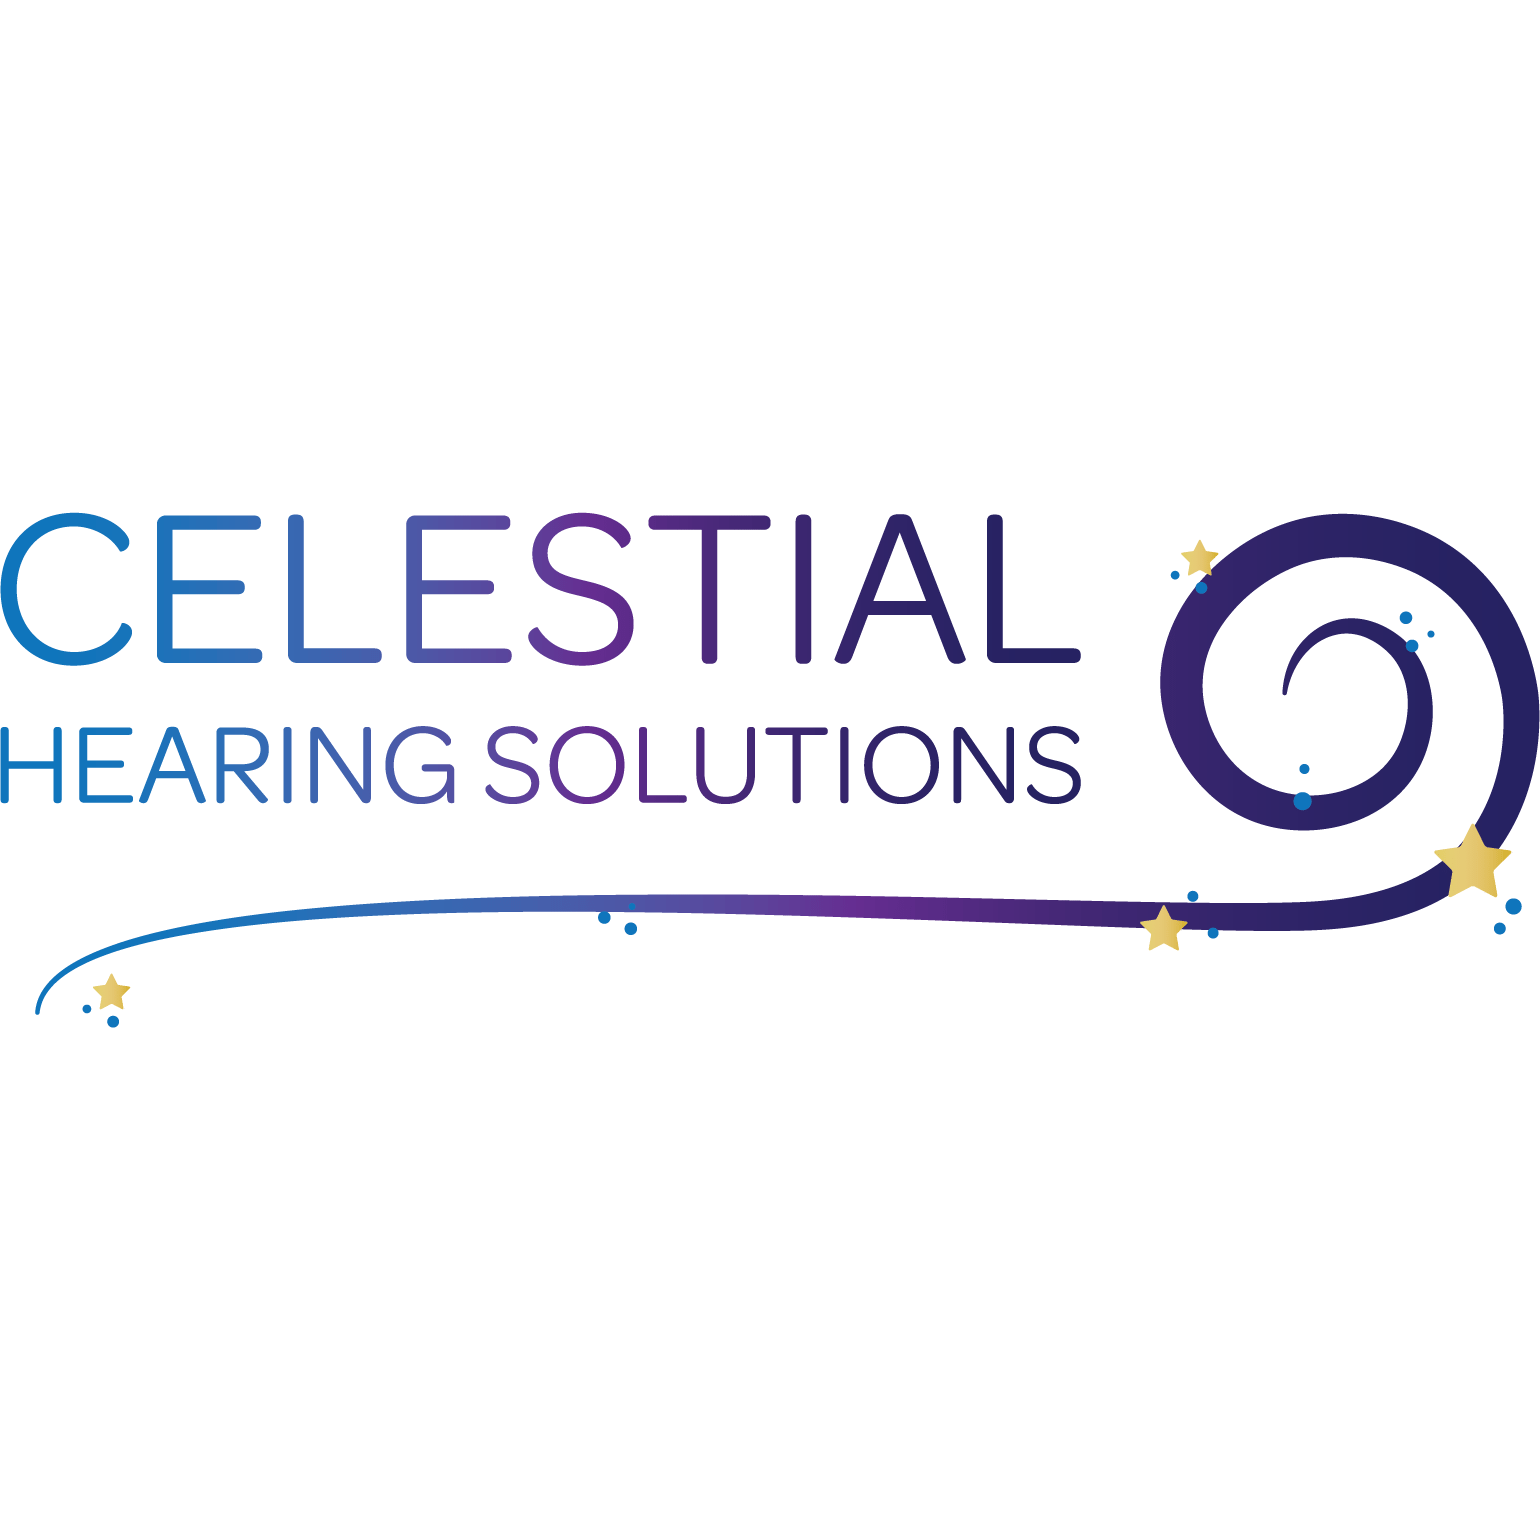 Celestial Hearing Solutions